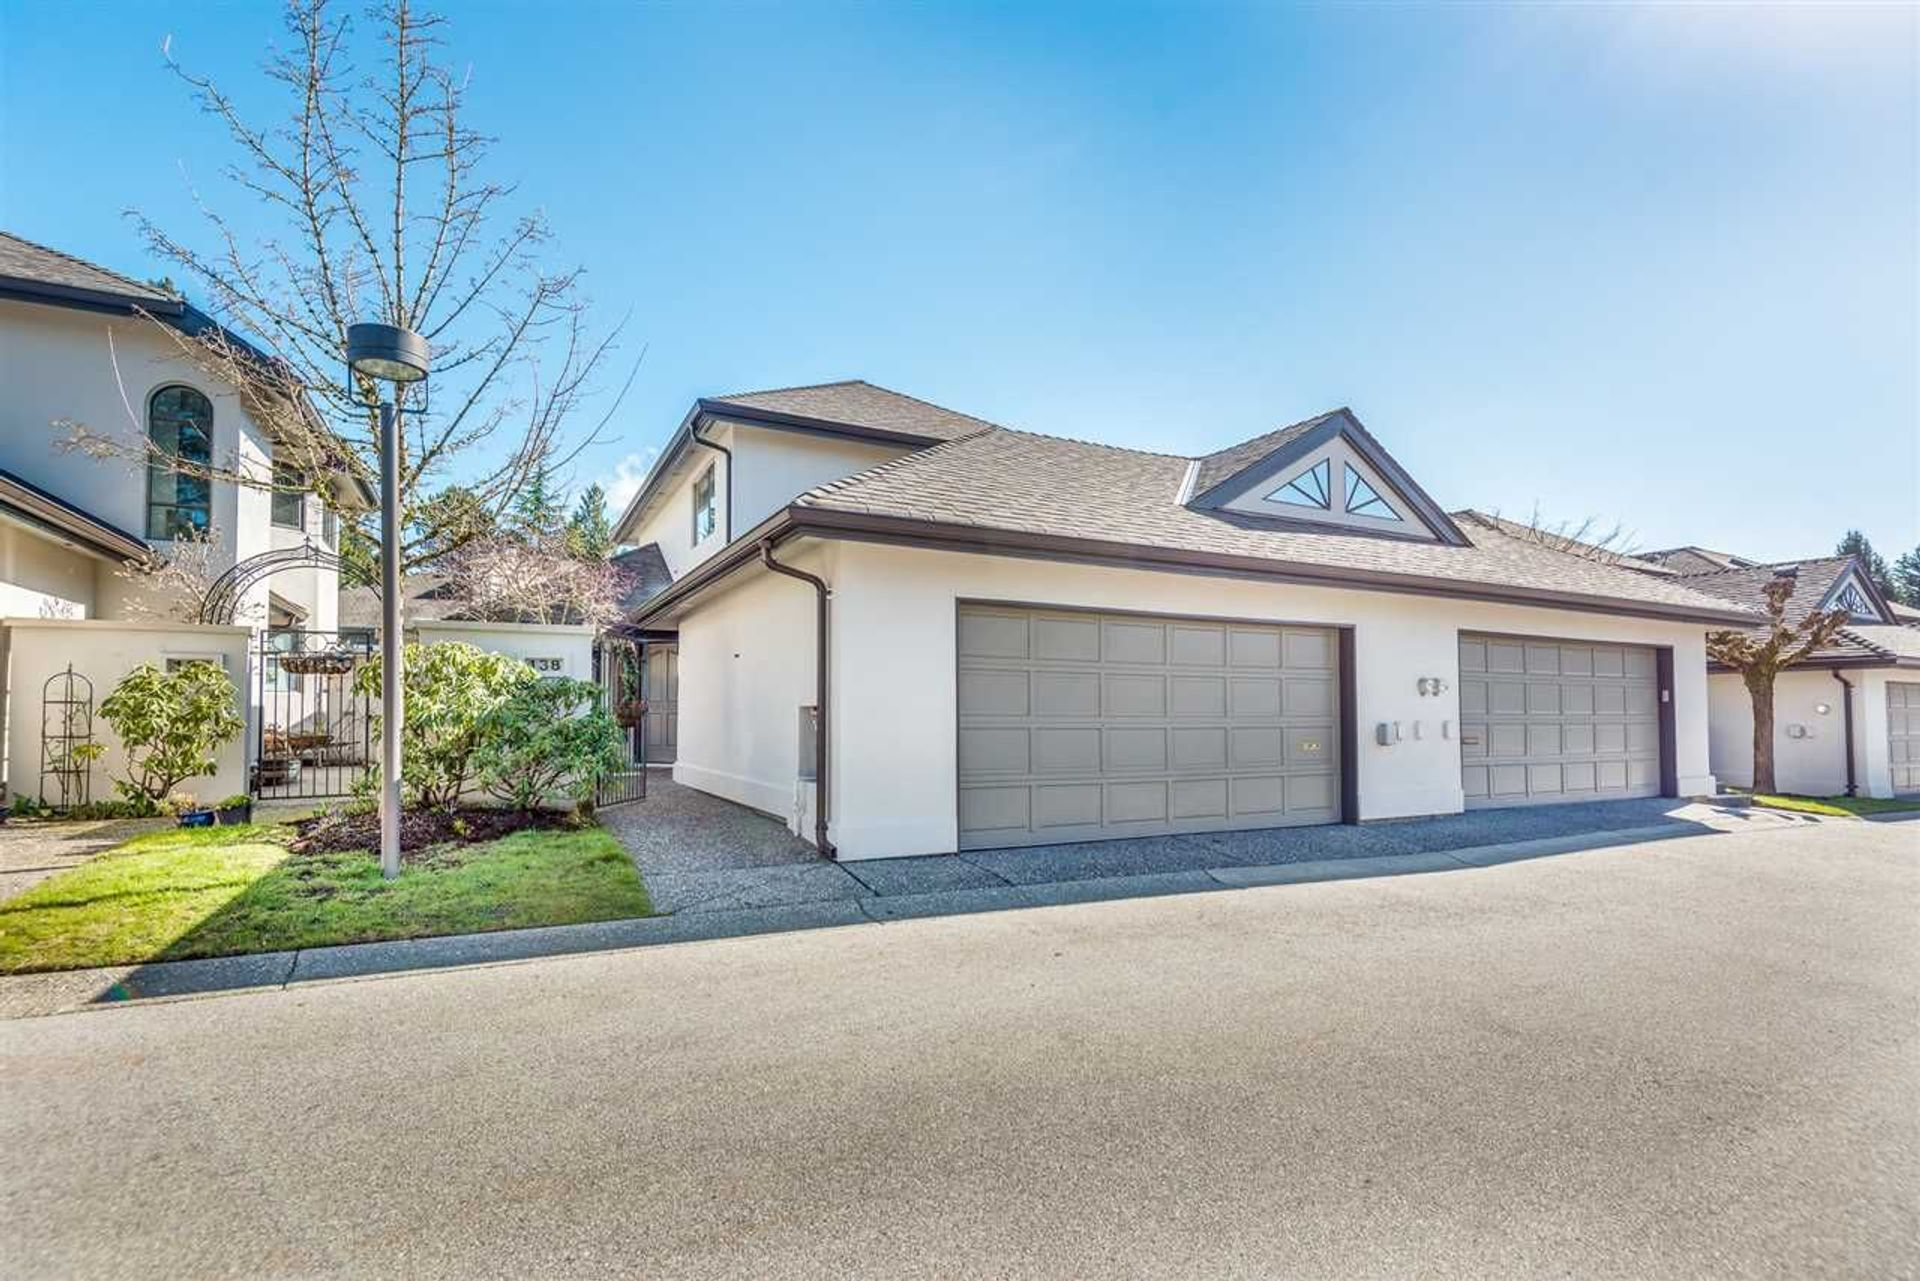 1770-128-street-crescent-bch-ocean-pk-south-surrey-white-rock-02 at 138 - 1770 128 Street, Crescent Bch Ocean Pk., South Surrey White Rock